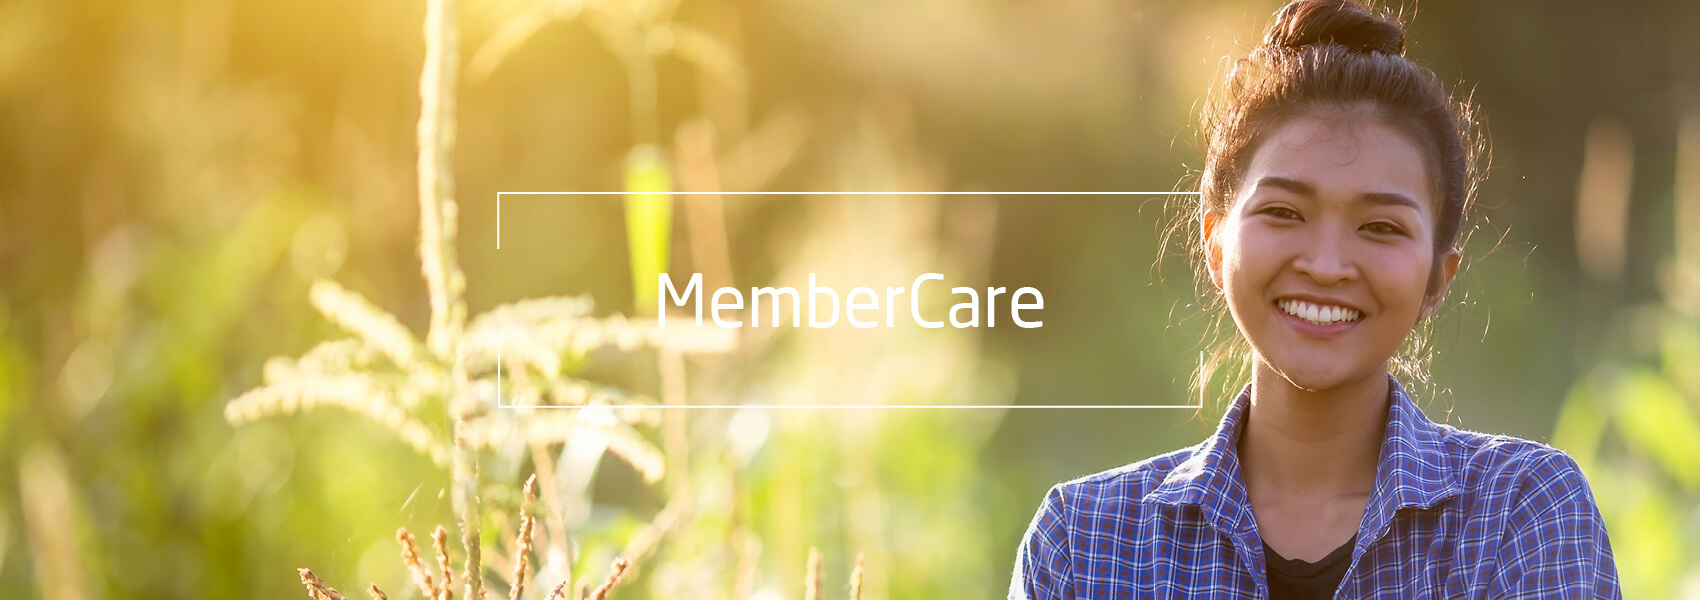 Woman, Text: Member Care